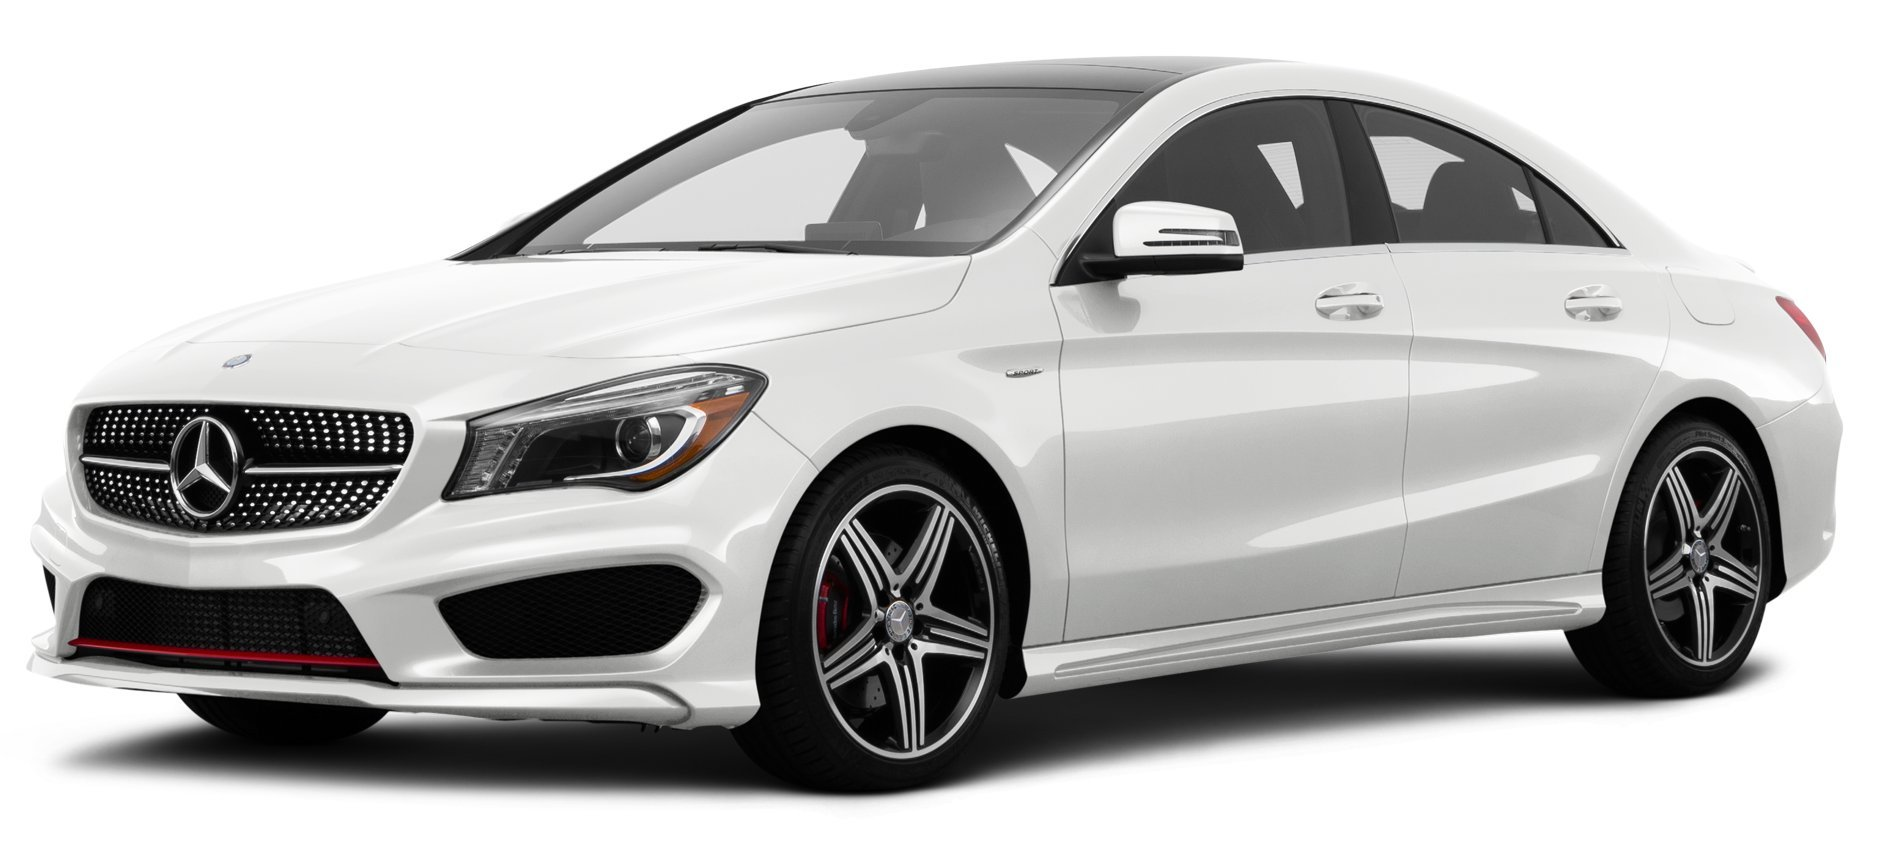 2016 mercedes benz cla250 reviews images and specs vehicles. Black Bedroom Furniture Sets. Home Design Ideas